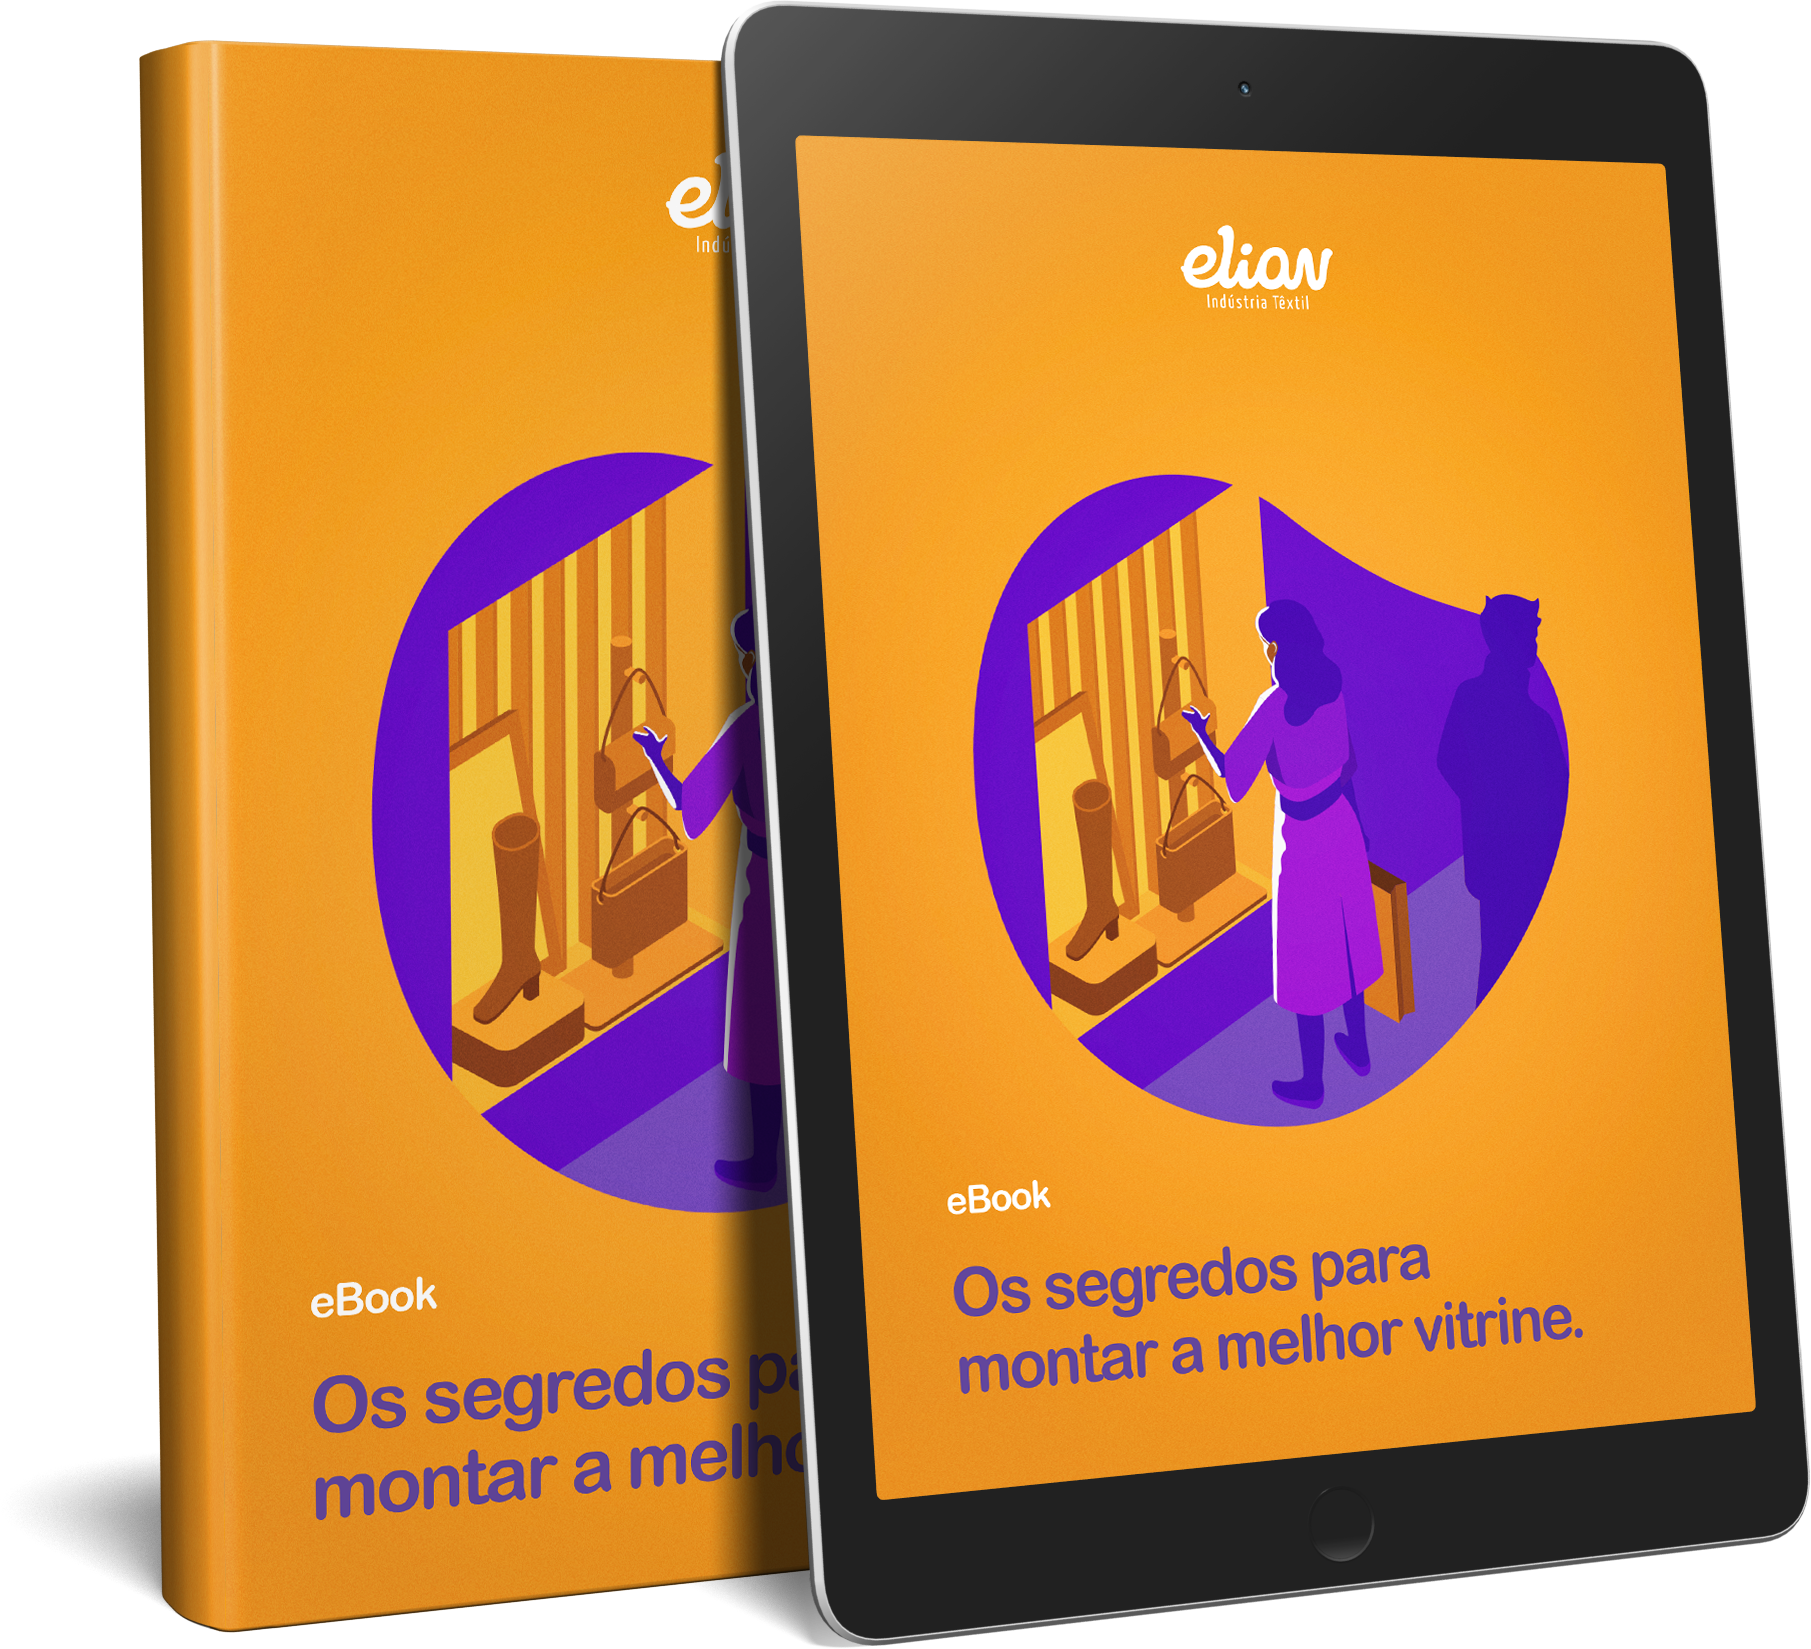 E-book Elian Visual Merchandising